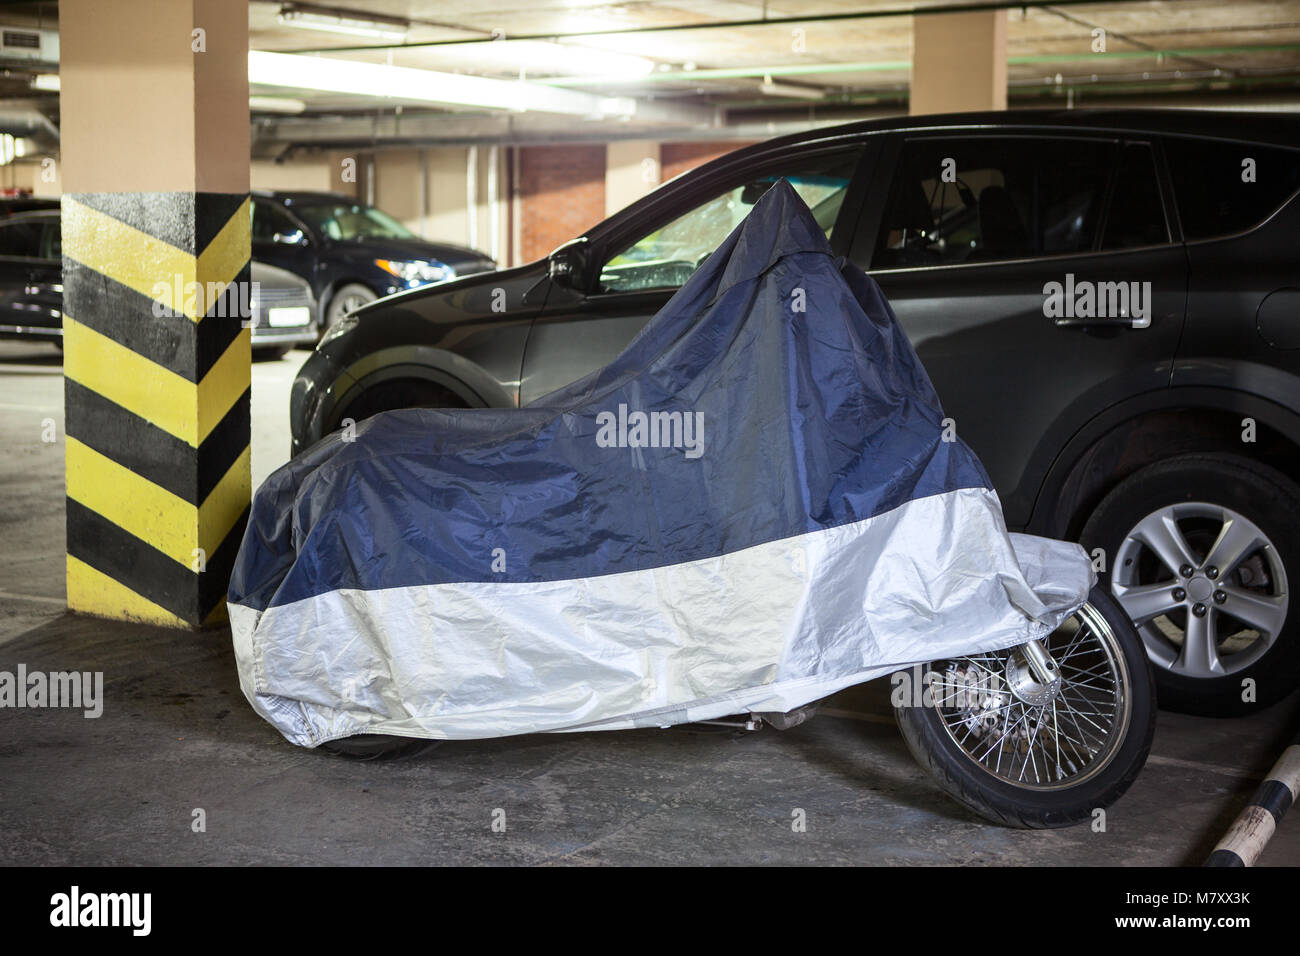 Single motorcycle is in warm underground parking garage covered with a tent - Stock Image